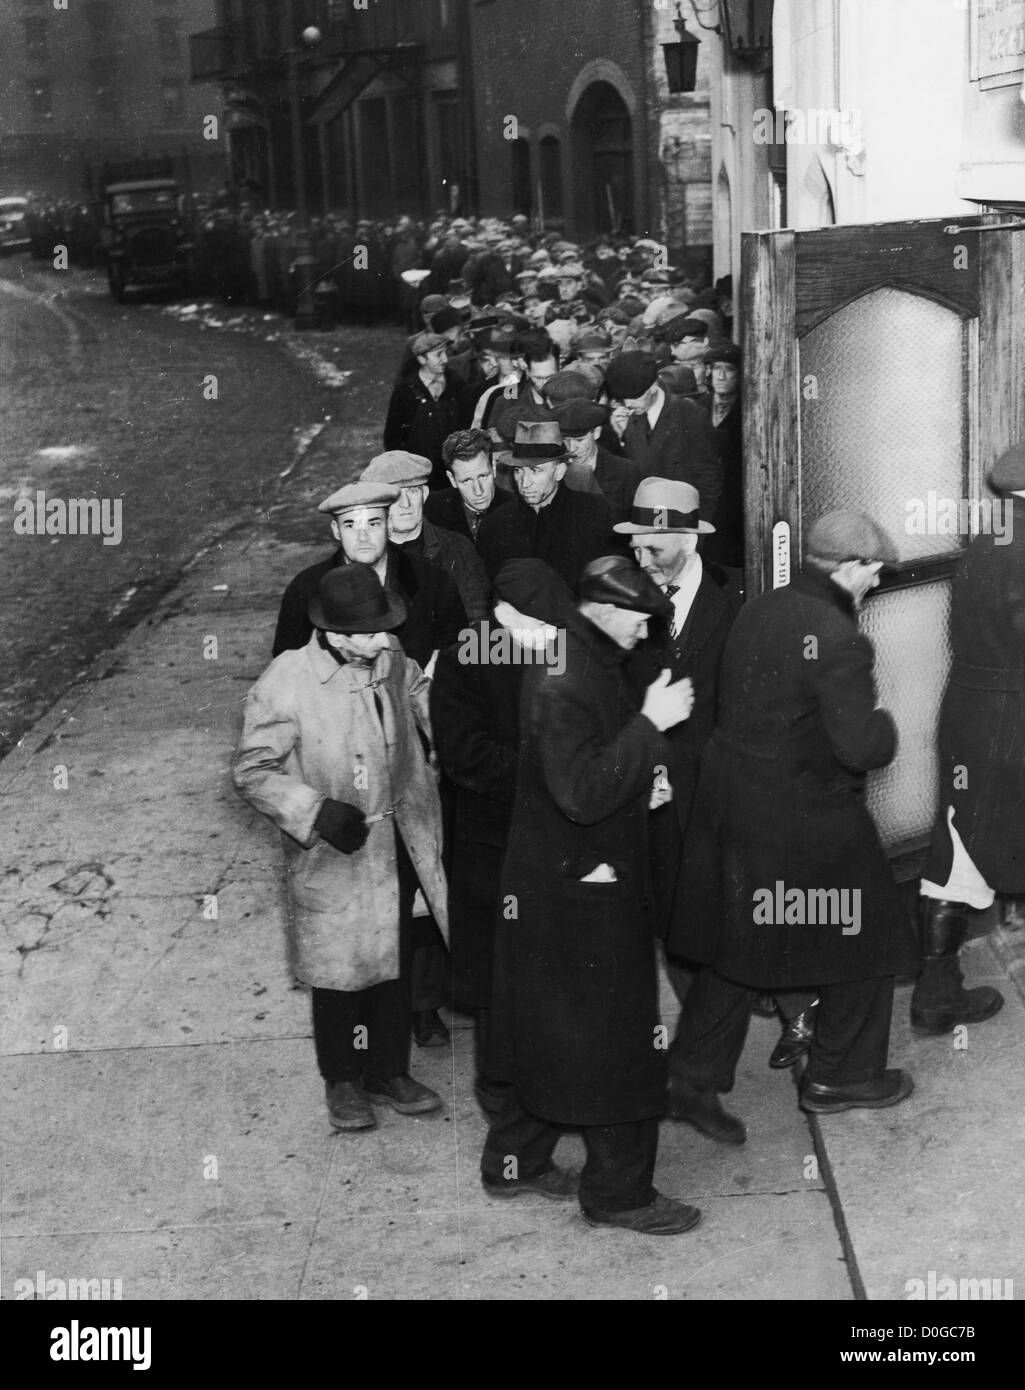 Depression era bread line, New York City - Stock Image